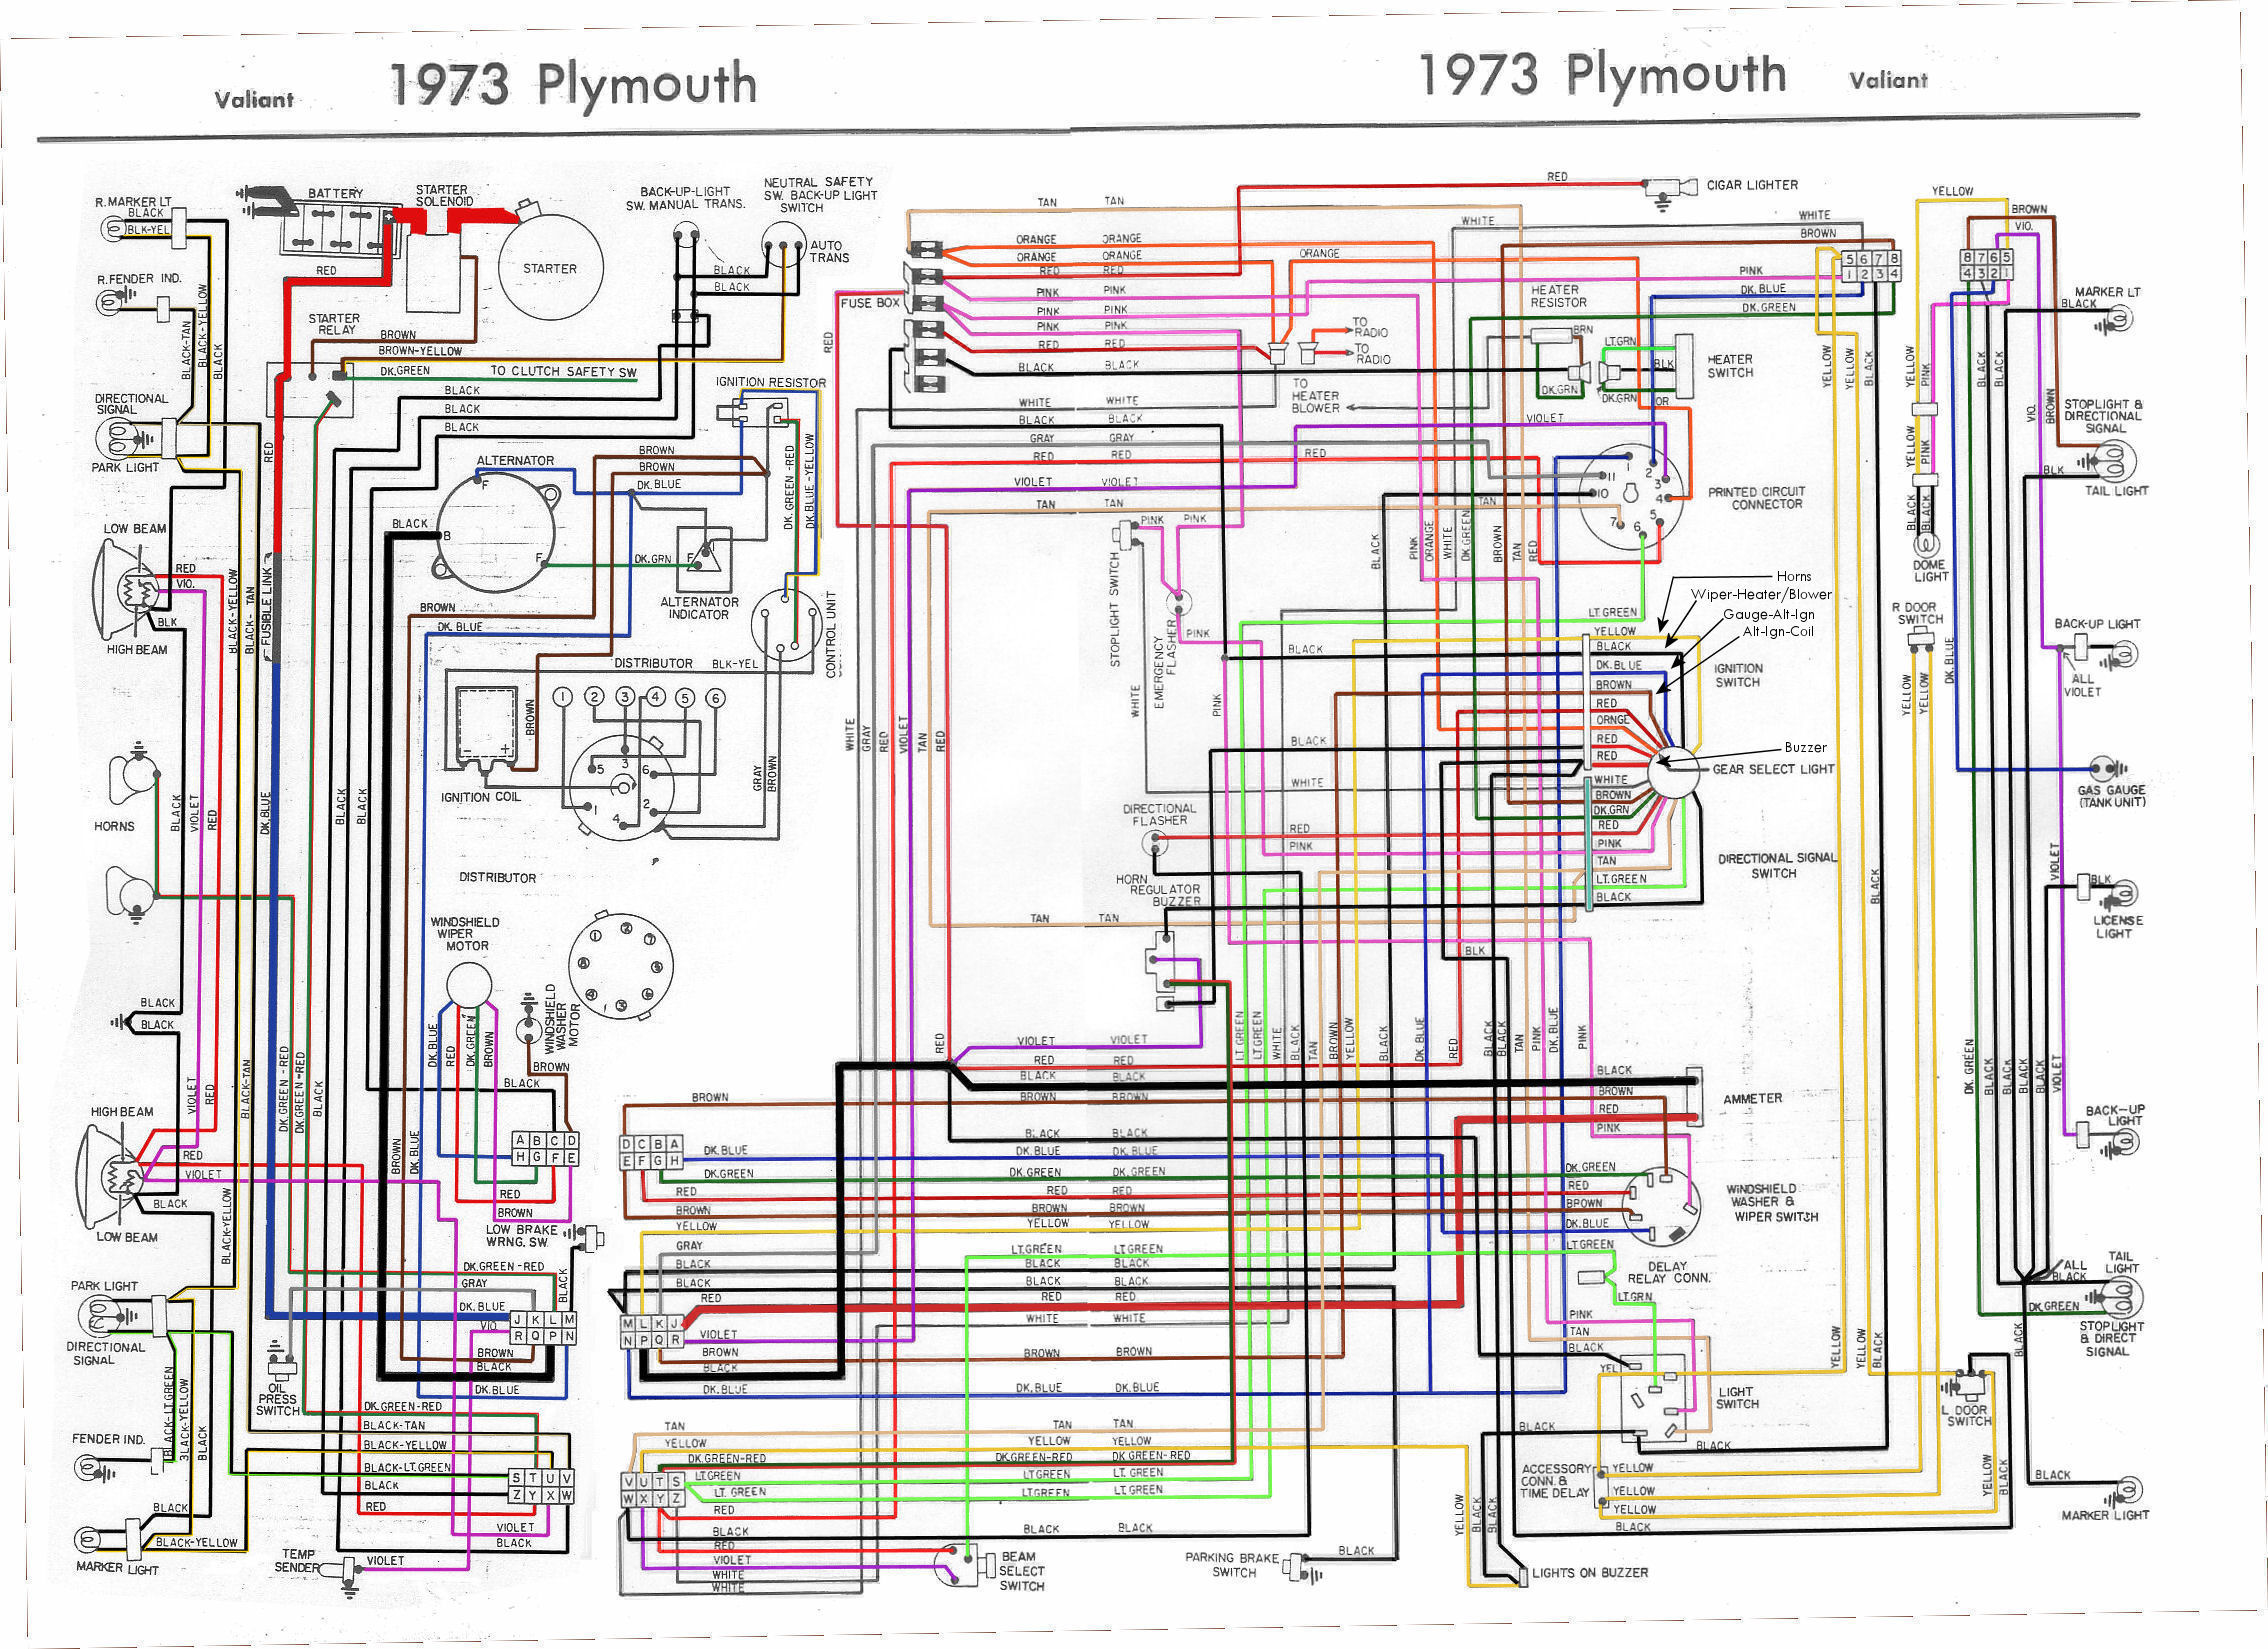 DFBCD 68 Plymouth Barracuda Wiring Diagram | Wiring ResourcesWiring Resources